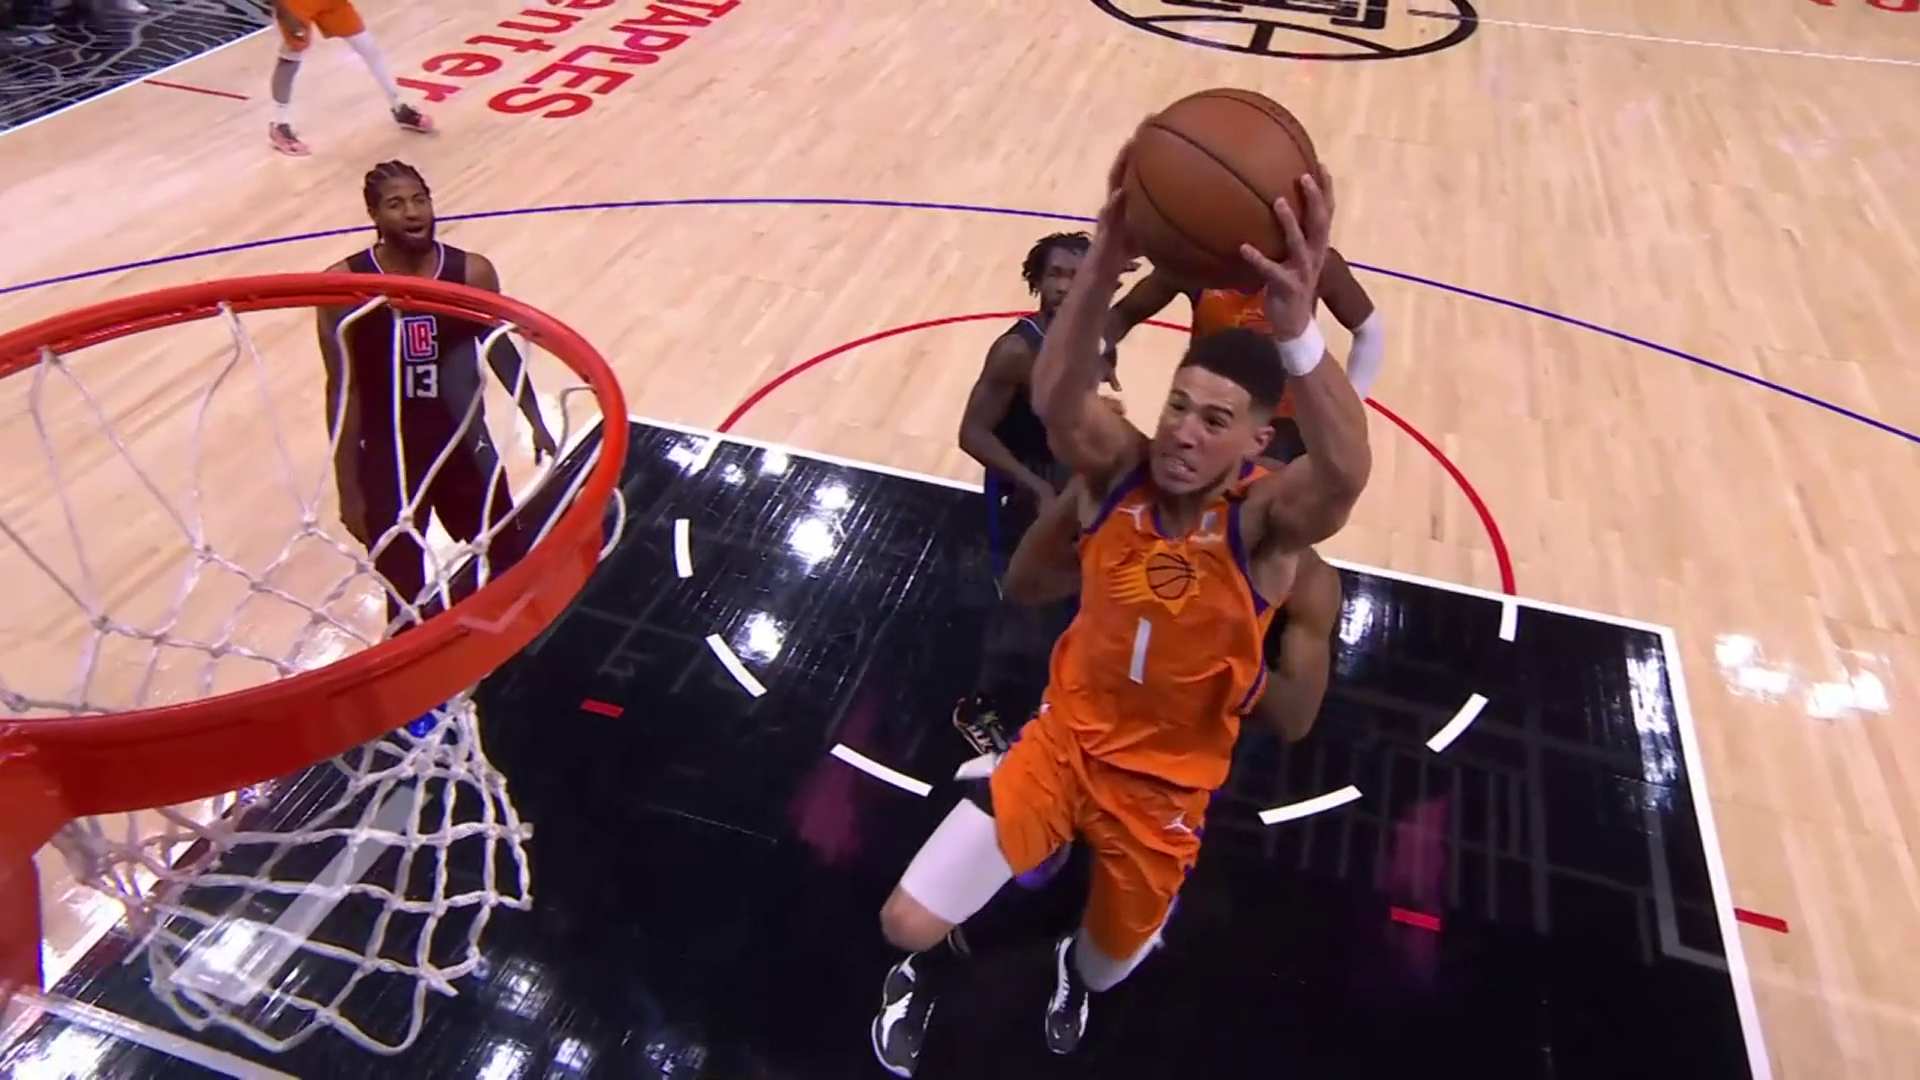 Suns vs Clippers Highlights: Game 6